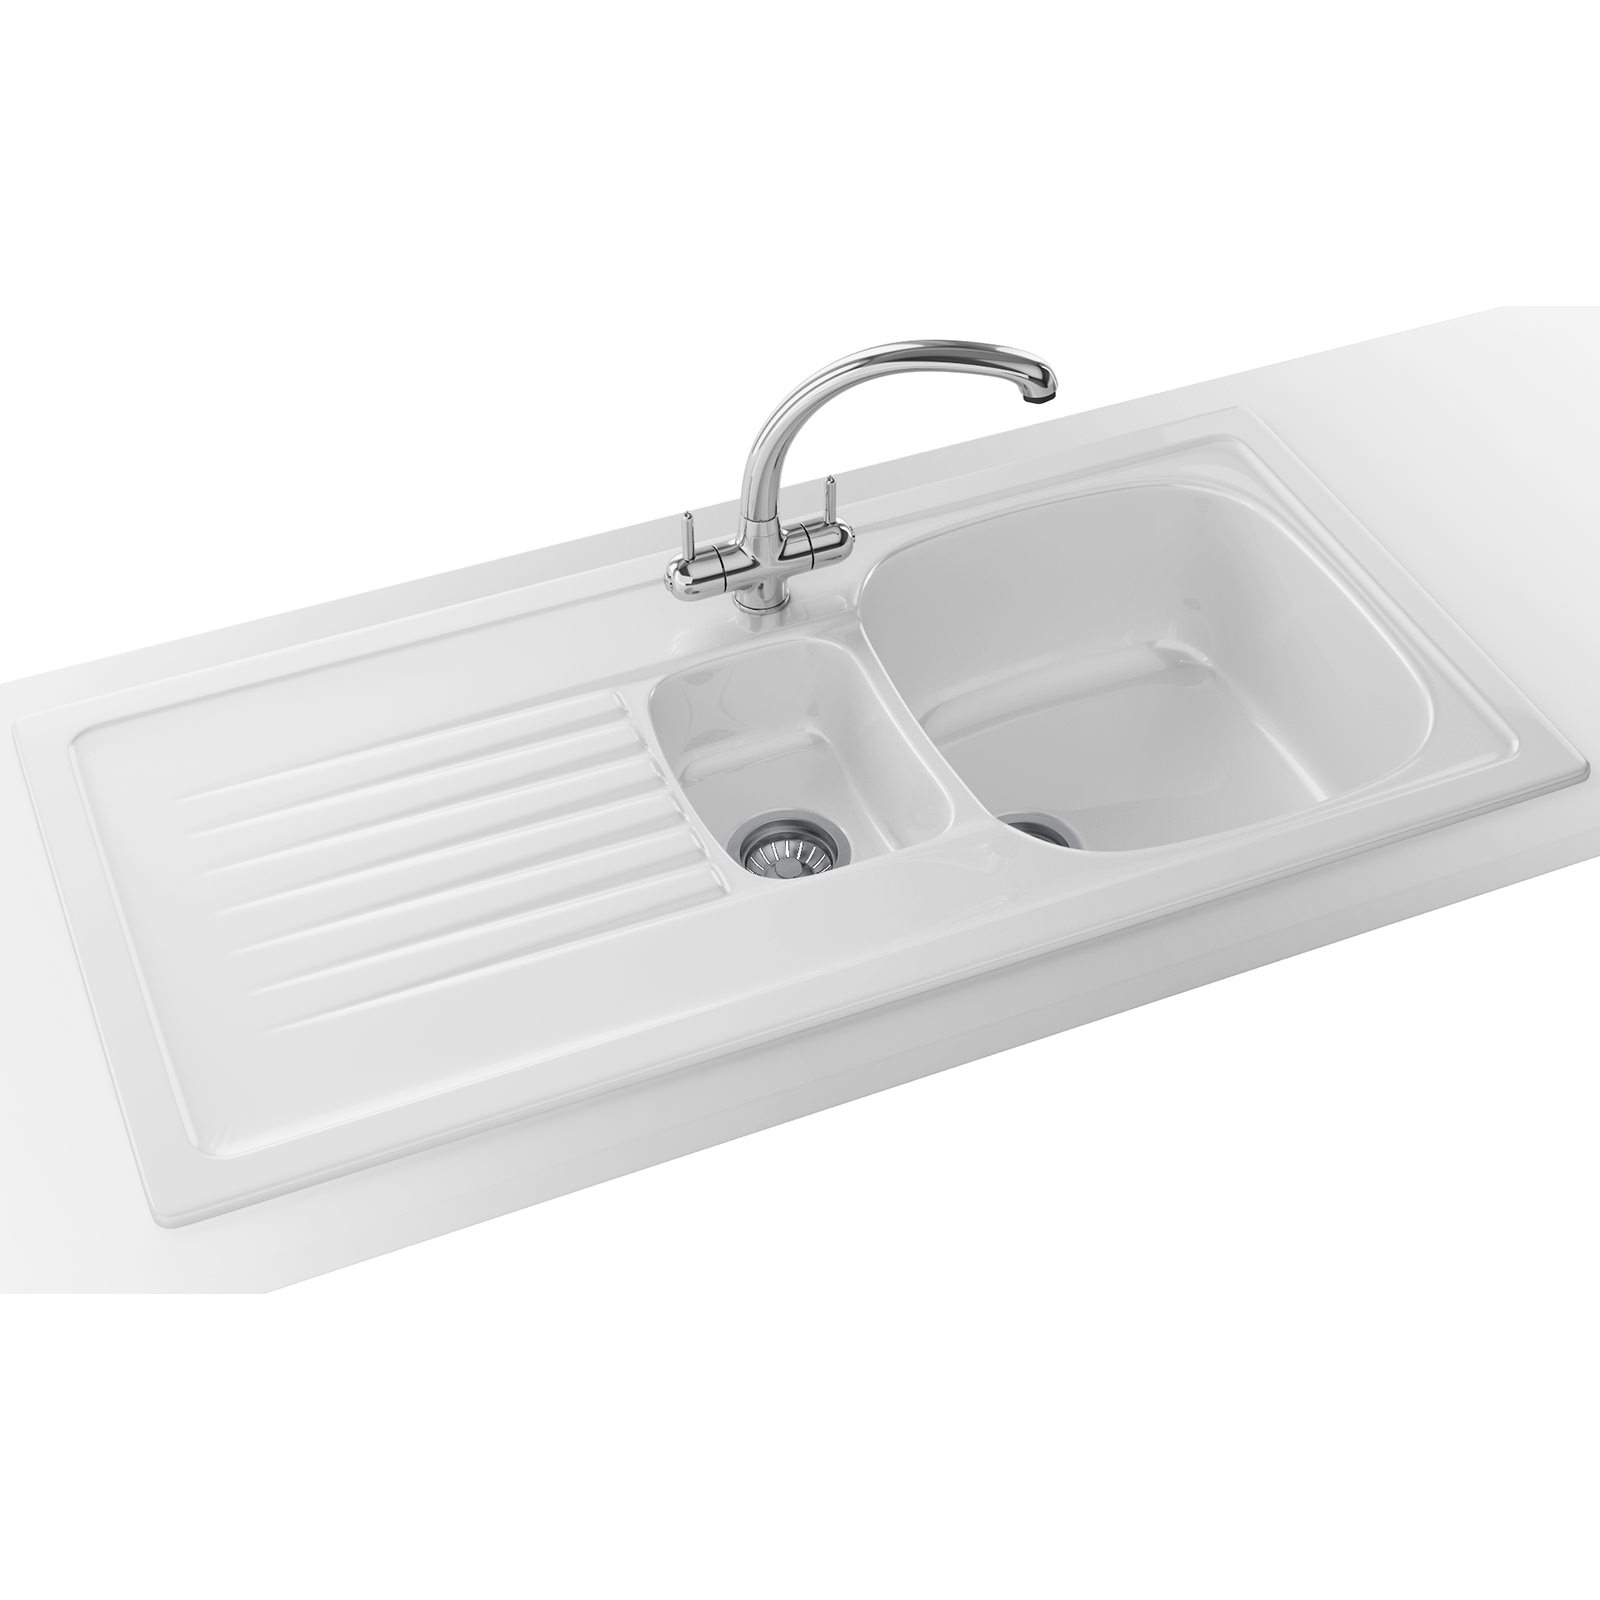 Franke Elba Propack ELK 651 Ceramic White Inset Sink And Tap 124 ...